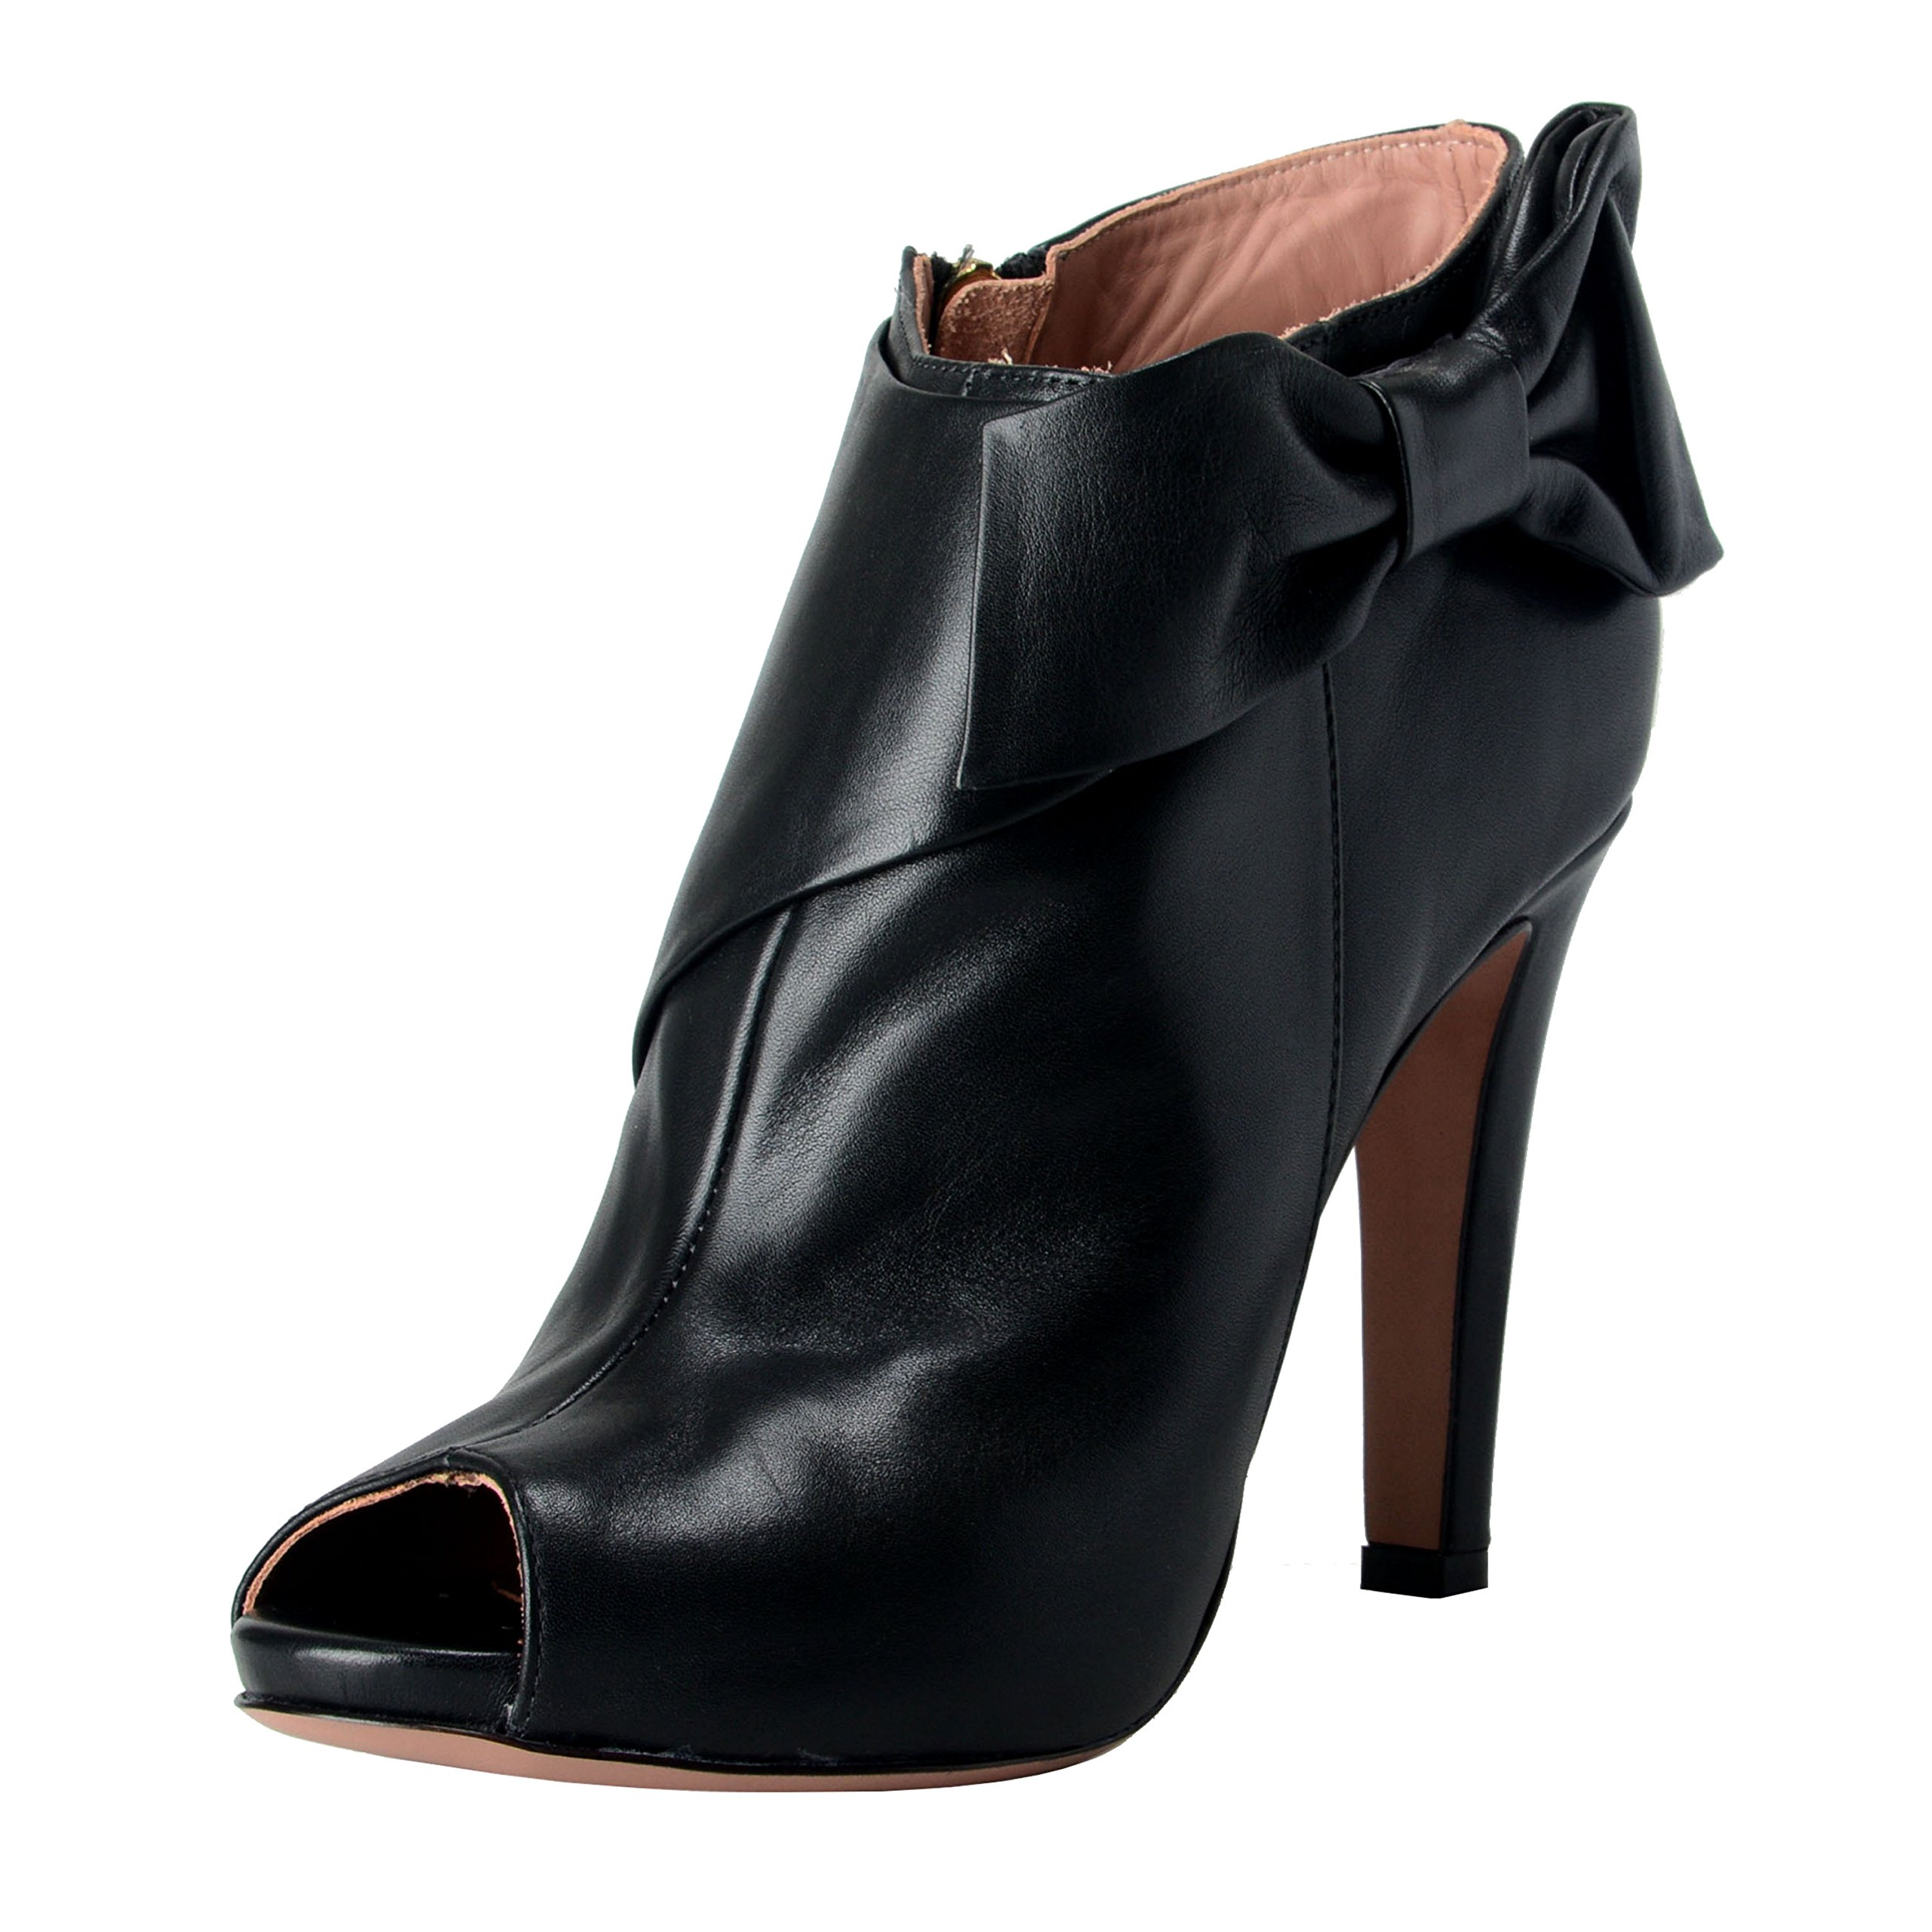 Red Valentino Women's Black Leather High Heel Open Toe Boots Shoes US 10 IT 41